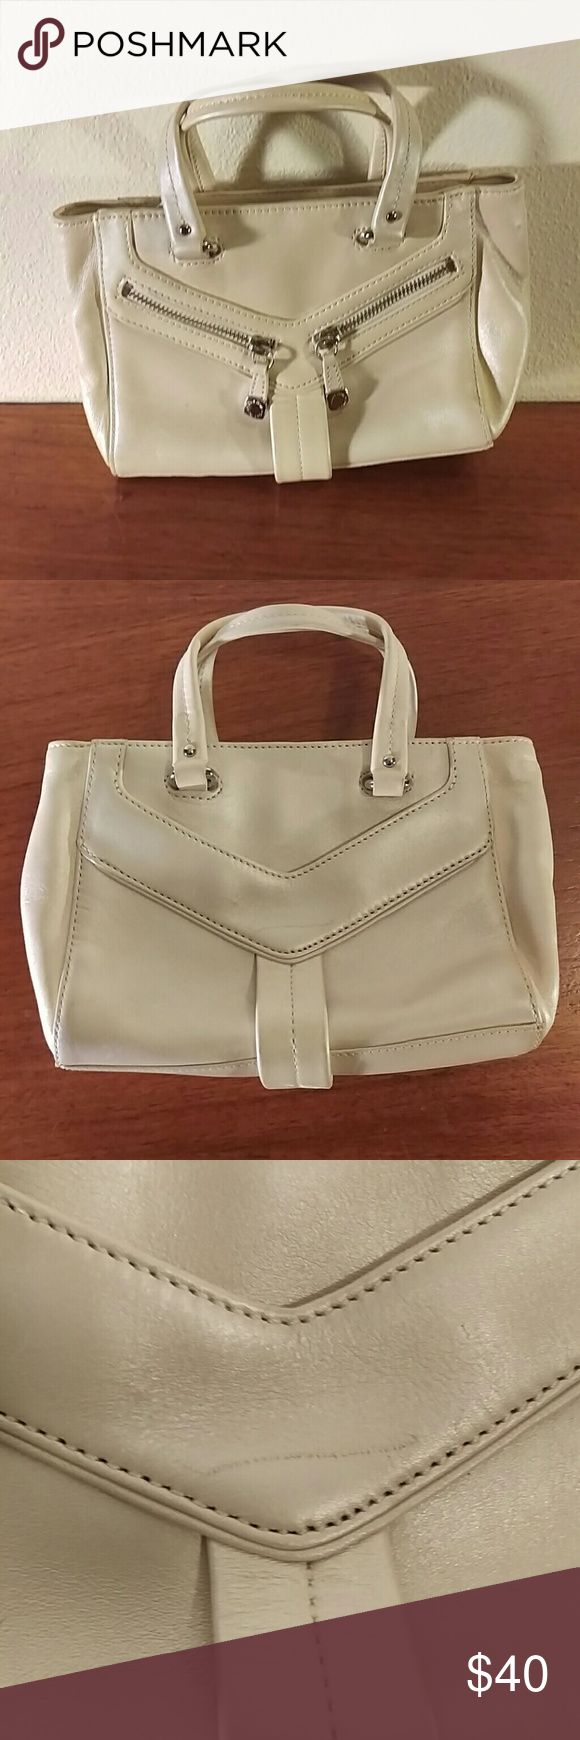 Cole Haan Cream Purse Good condition though has a couple scratches and the form is a little off from being stored for a while. Cole Haan Bags Shoulder Bags